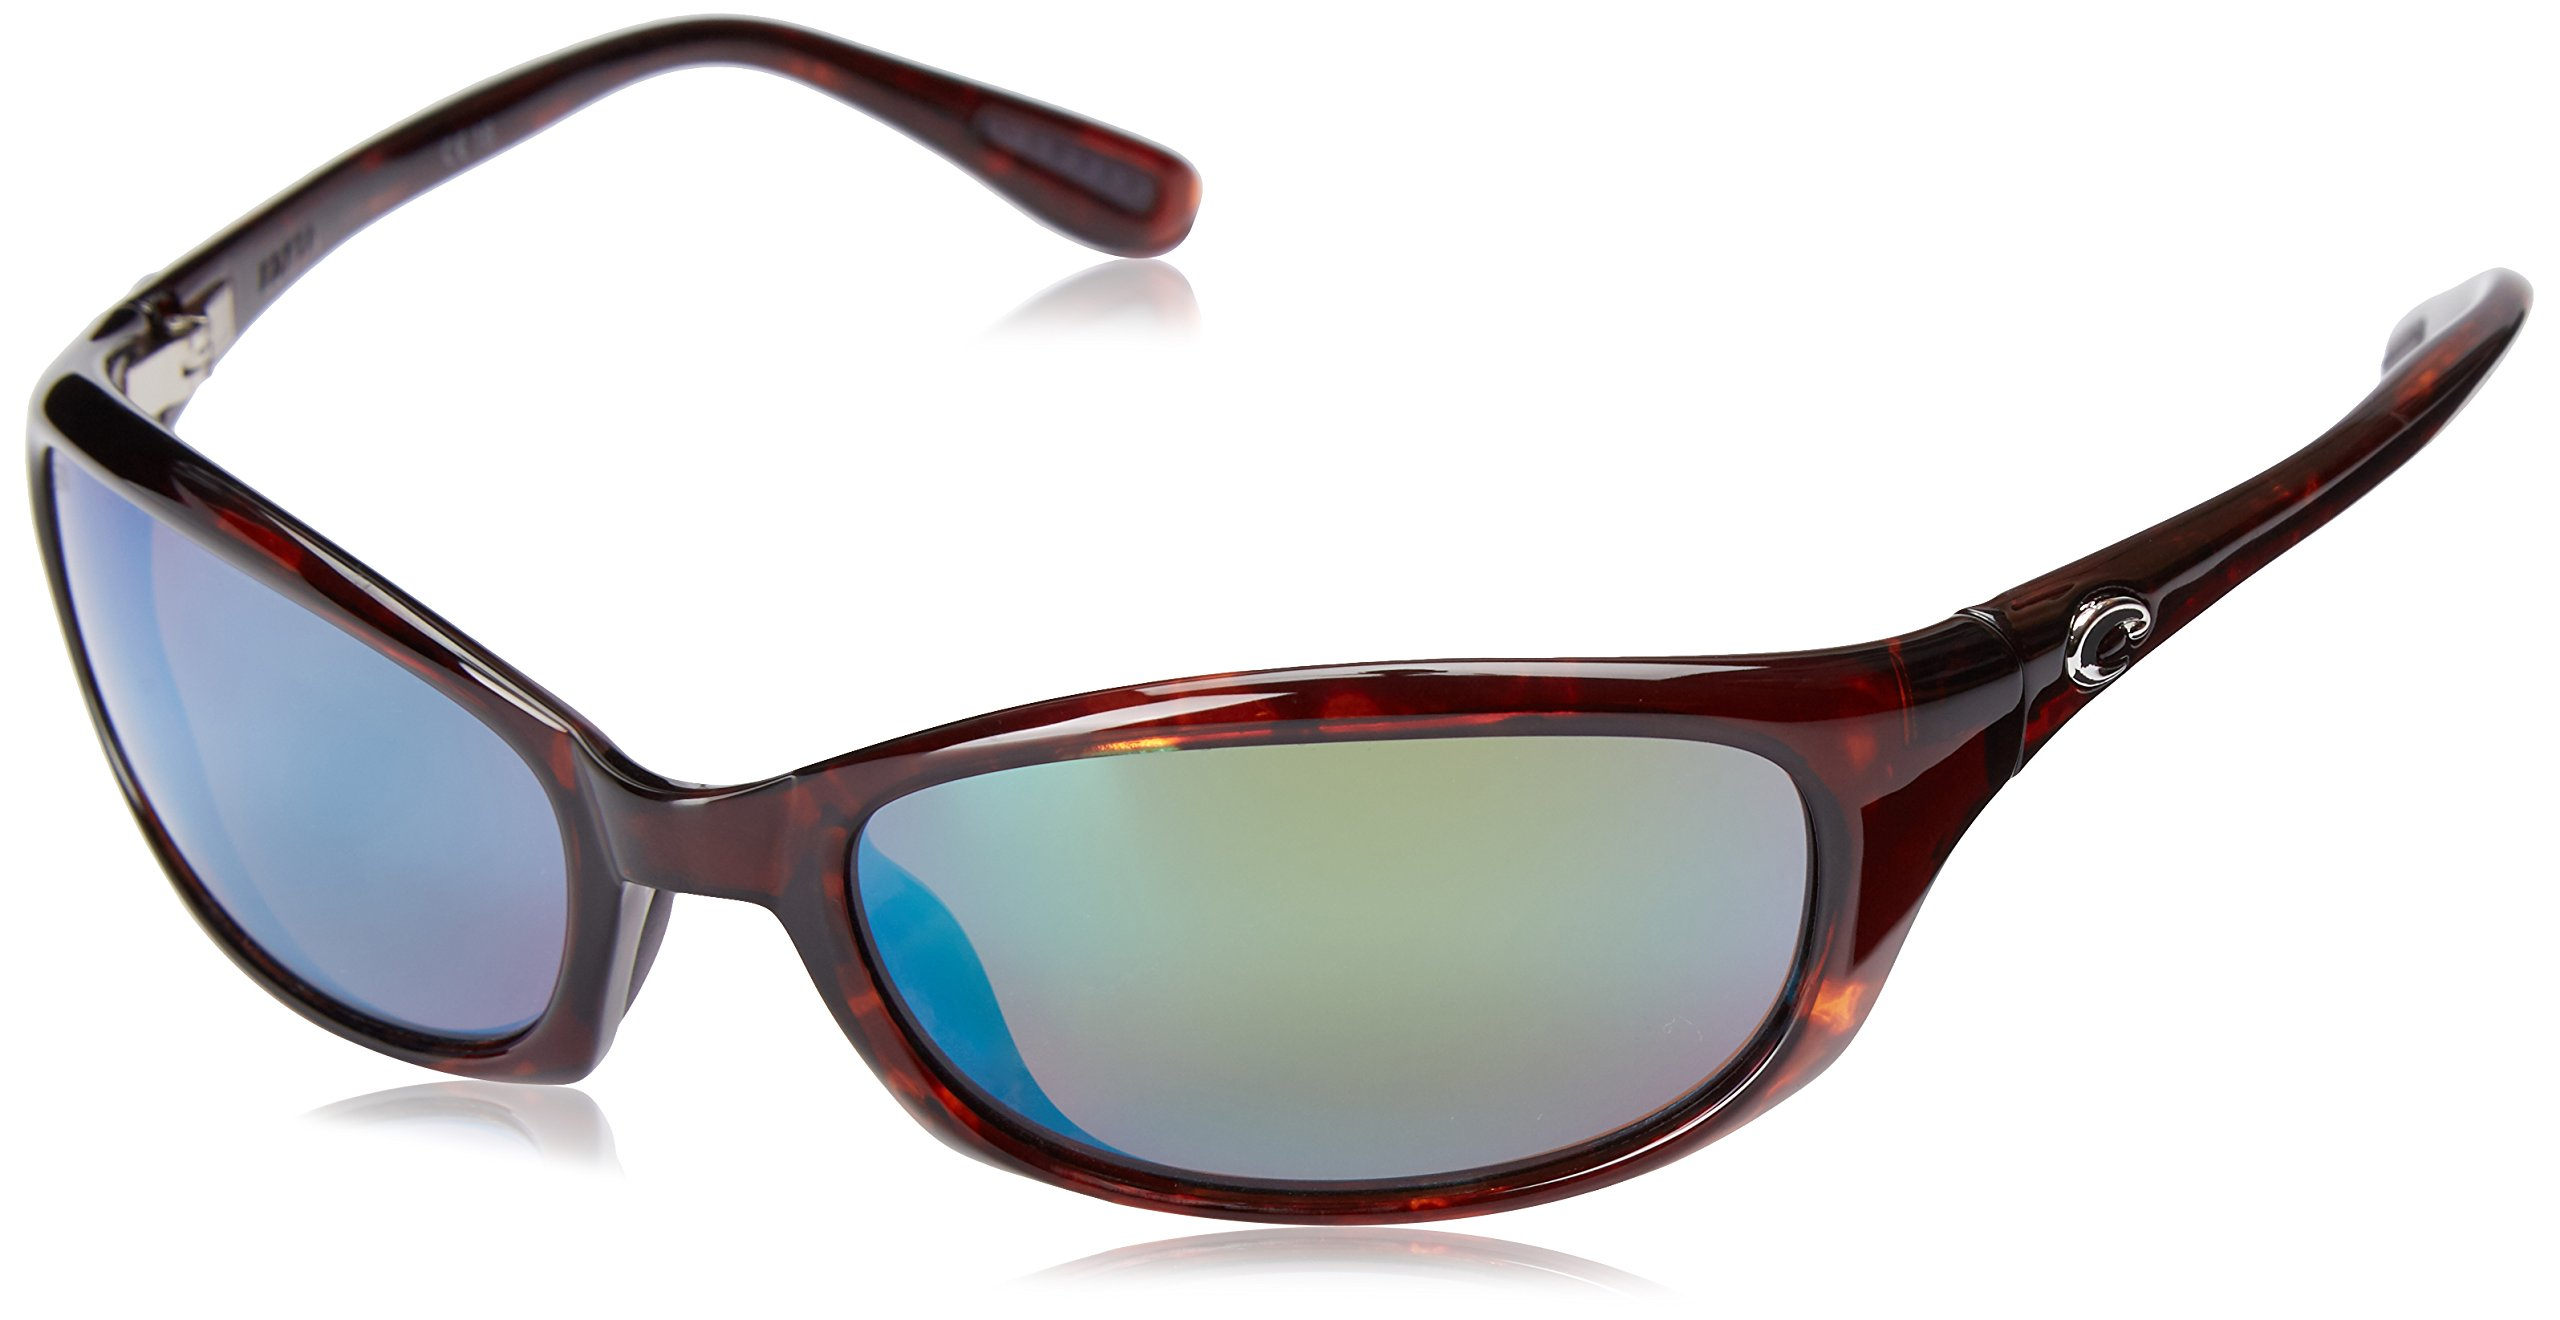 Costa del Mar Harpoon Polarized Iridium Oval Sunglasses, Tortoise, 61.5 mm